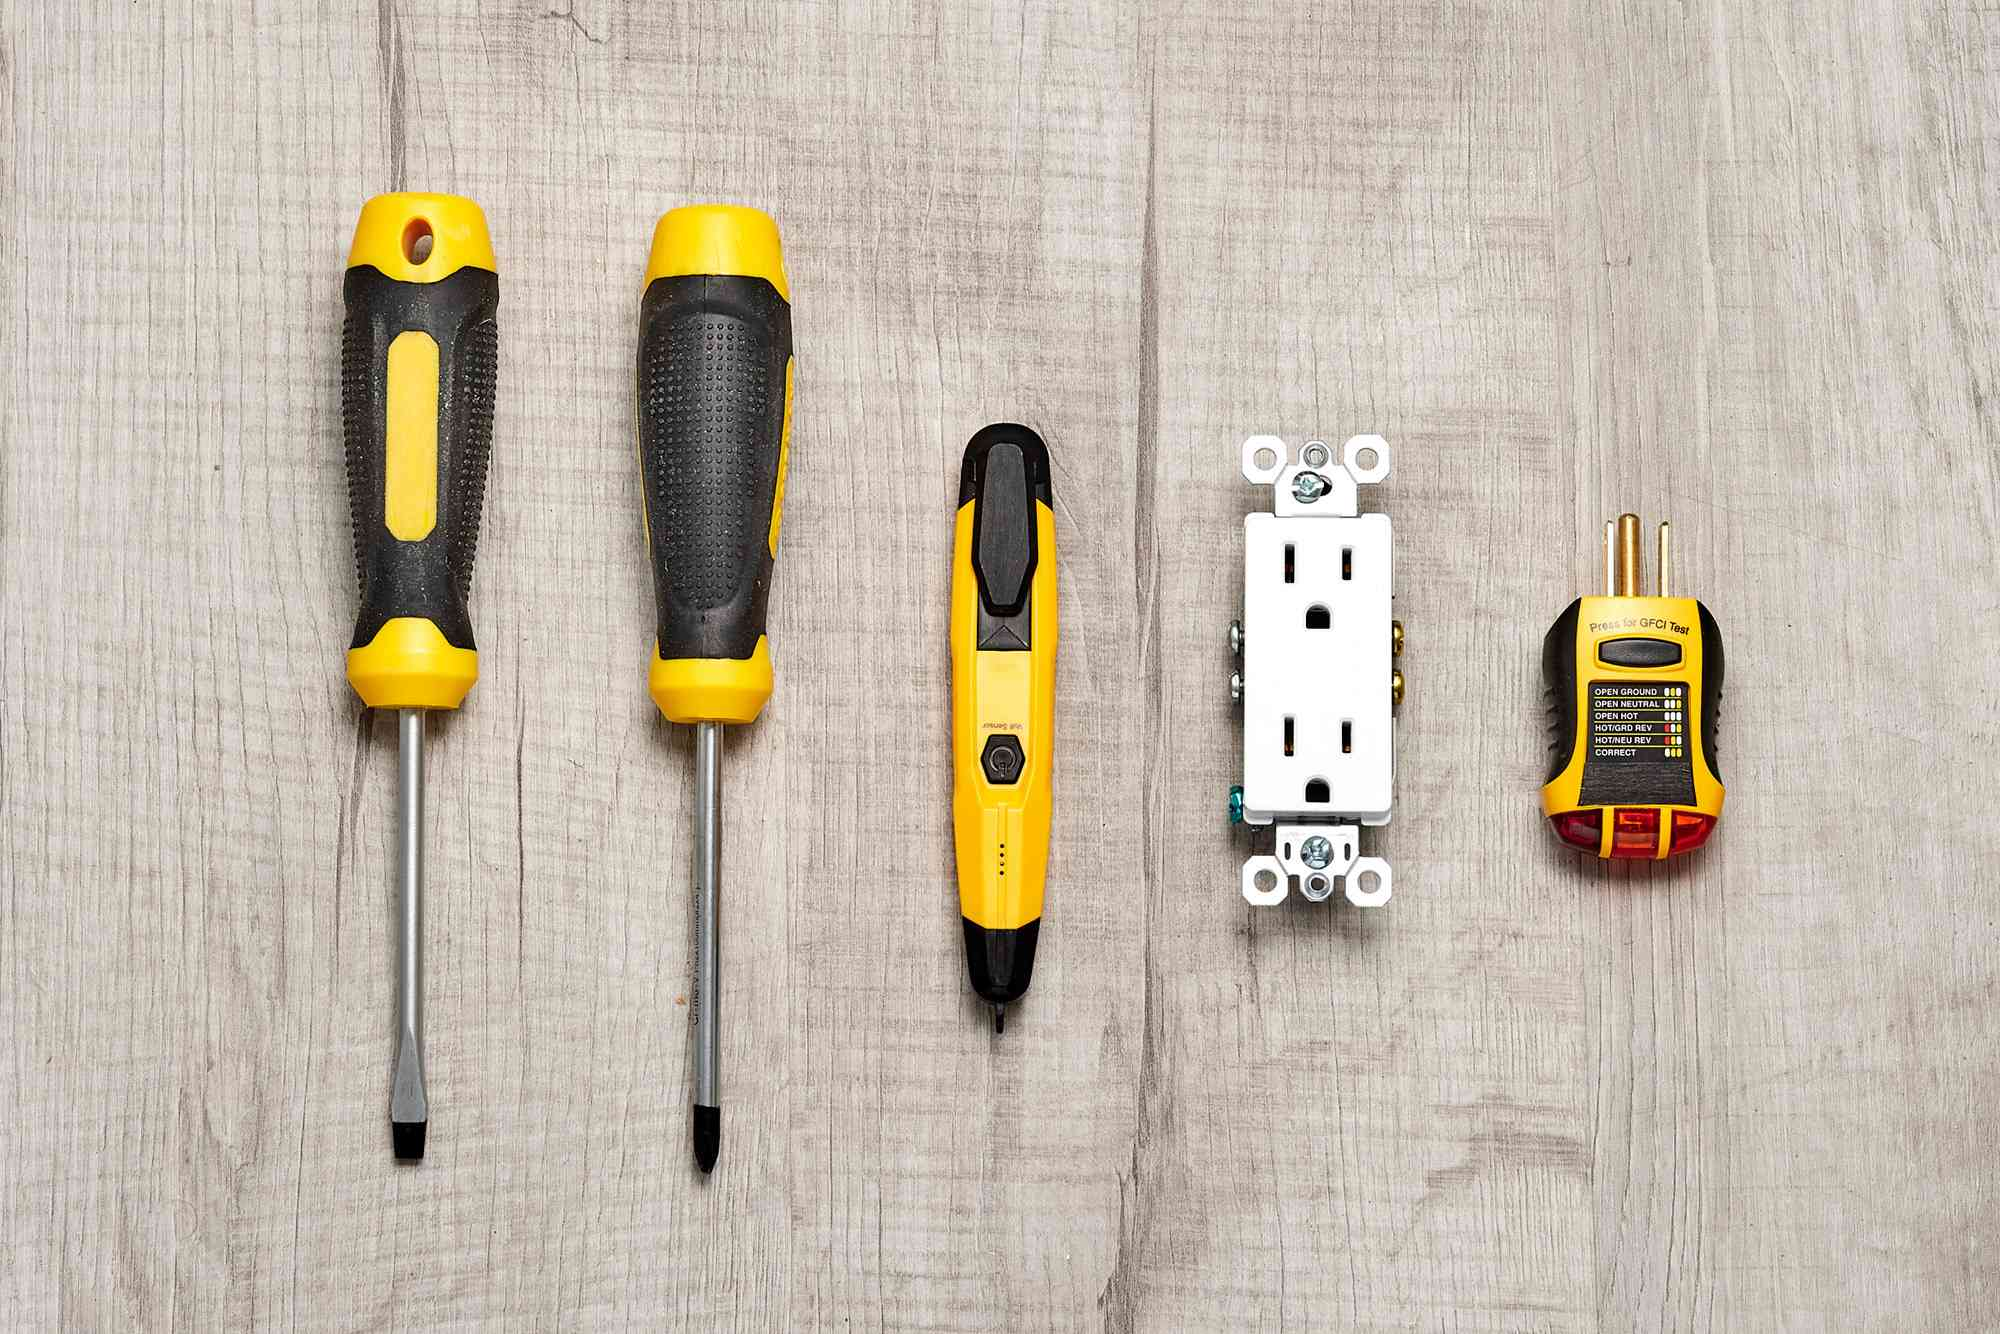 Materials and tools to fix an electrical outlet problems by yourself